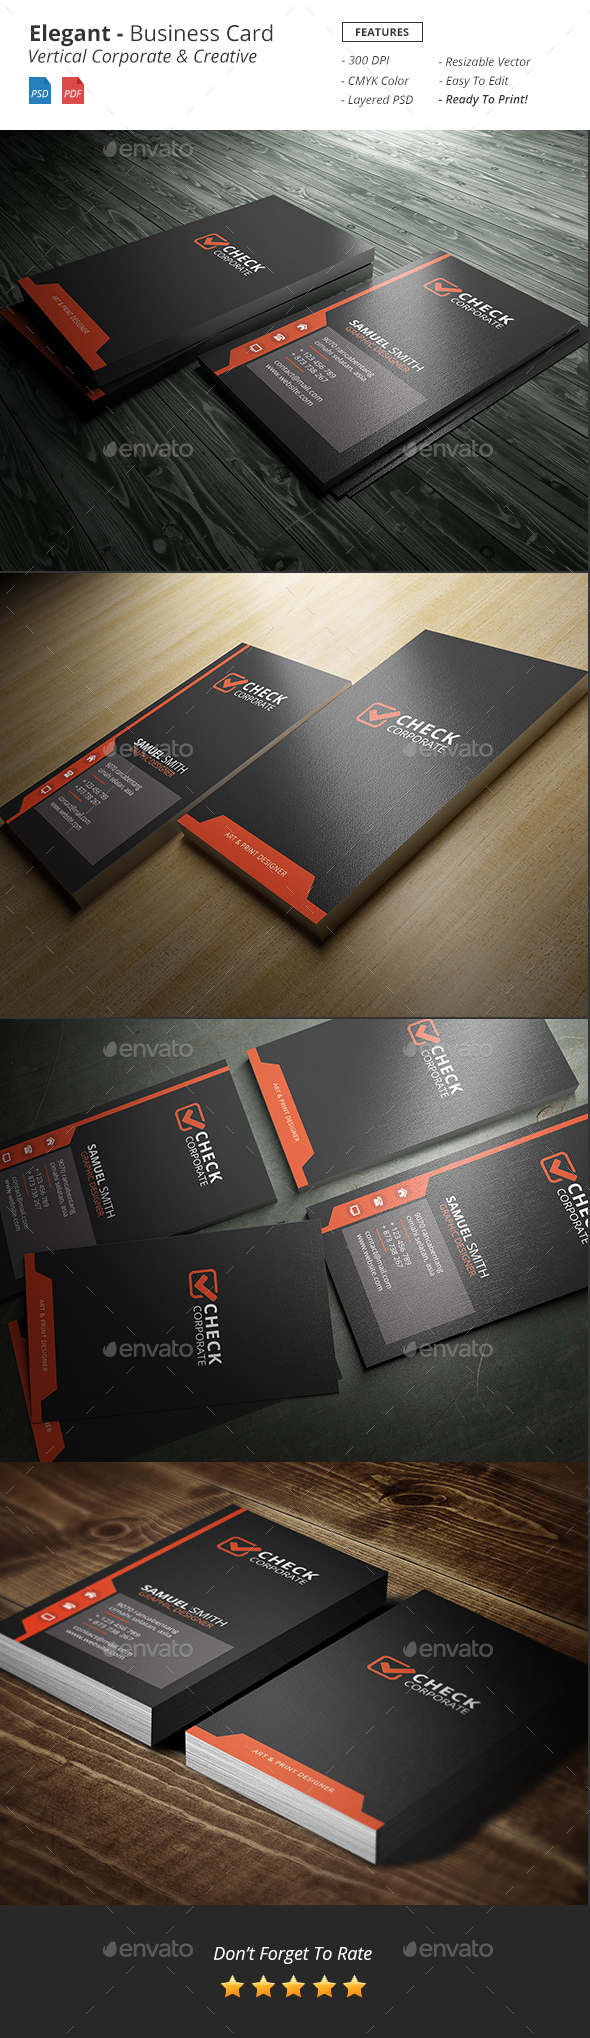 Elegant Vertical Business Card - Corporate Business Cards